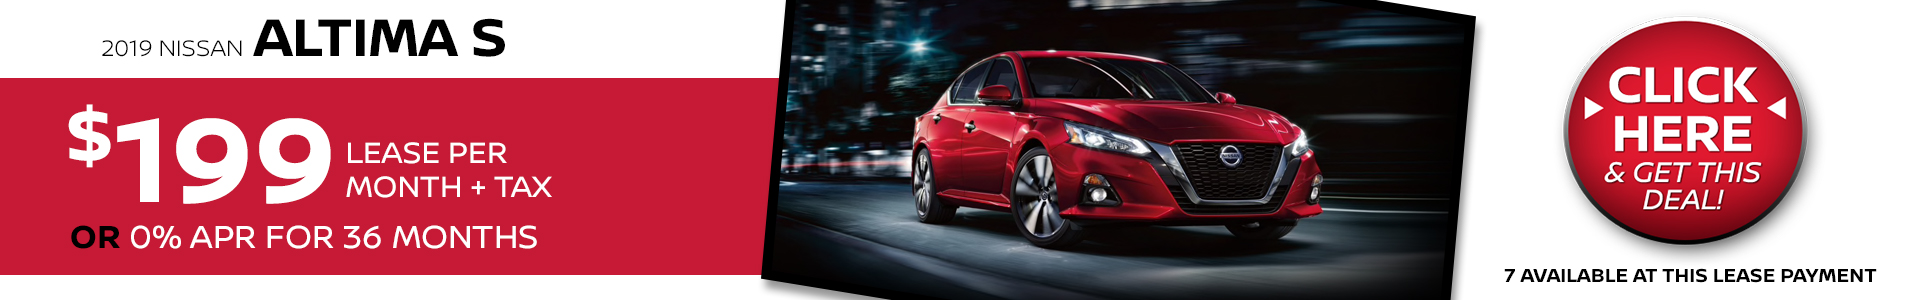 Mossy Nissan - Nissan Altima $199 Lease